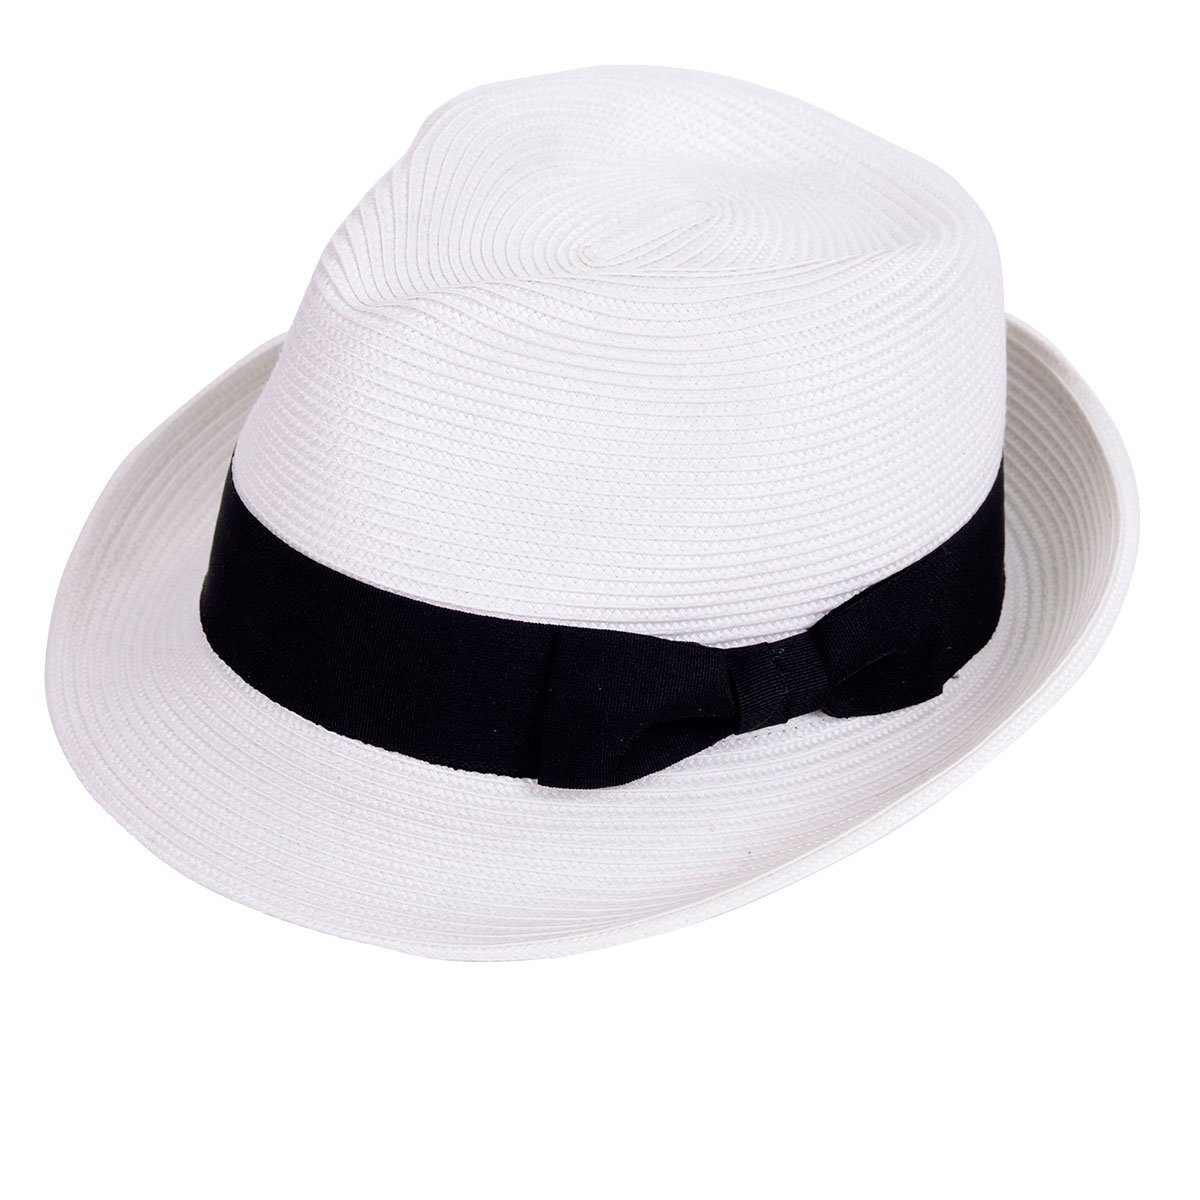 678a150b You can Save about 35%.Start Date:09/28/2018,End Date:10/8/2018. HIGH  QUALITY MATERIAL-Straw fedora hats are made ...